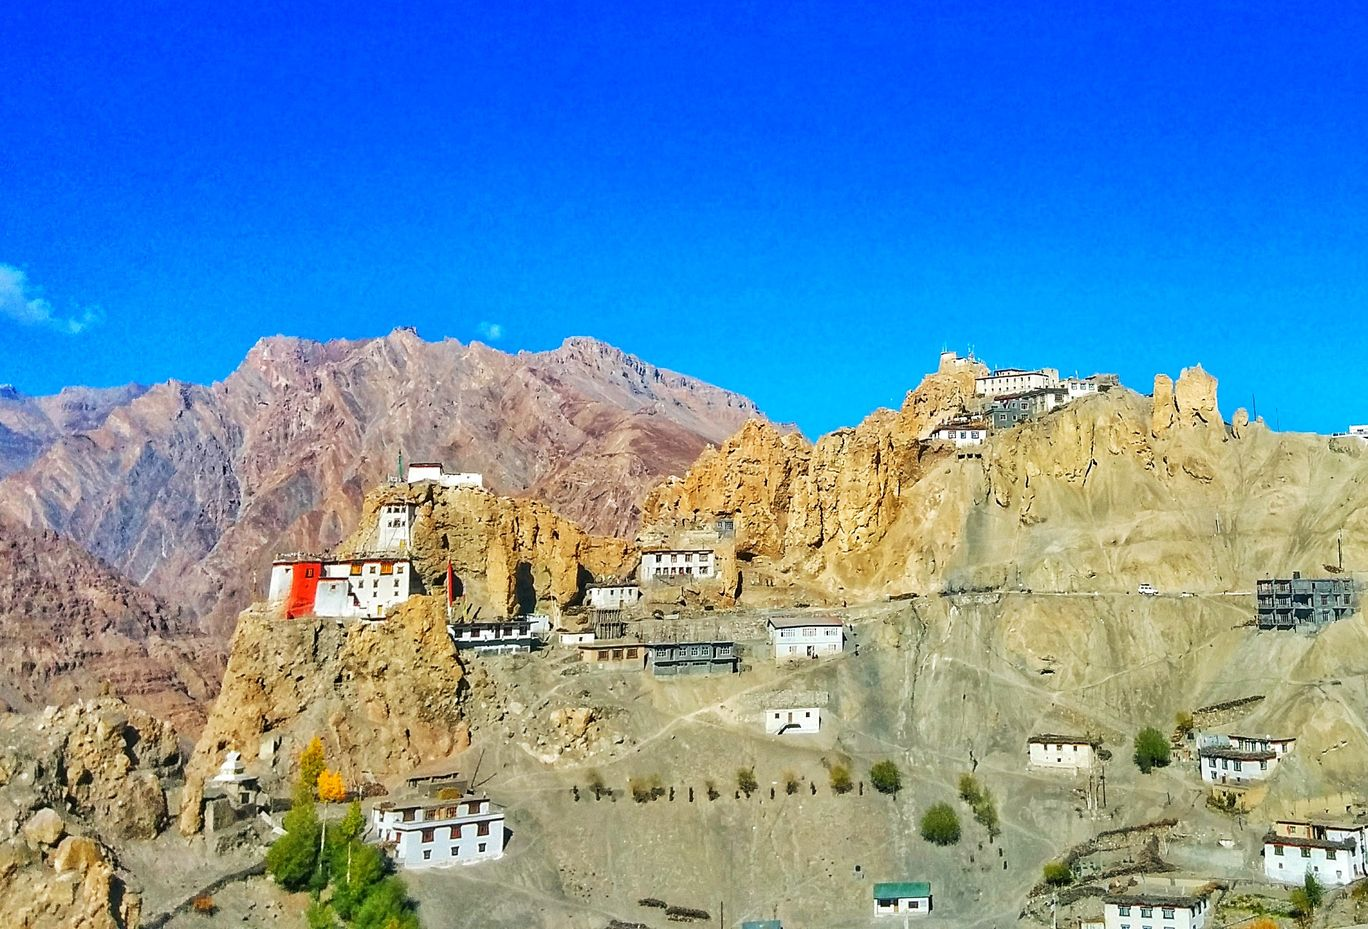 Photo of Dhankar Monastery By S S (Saurabh Sabikhi)